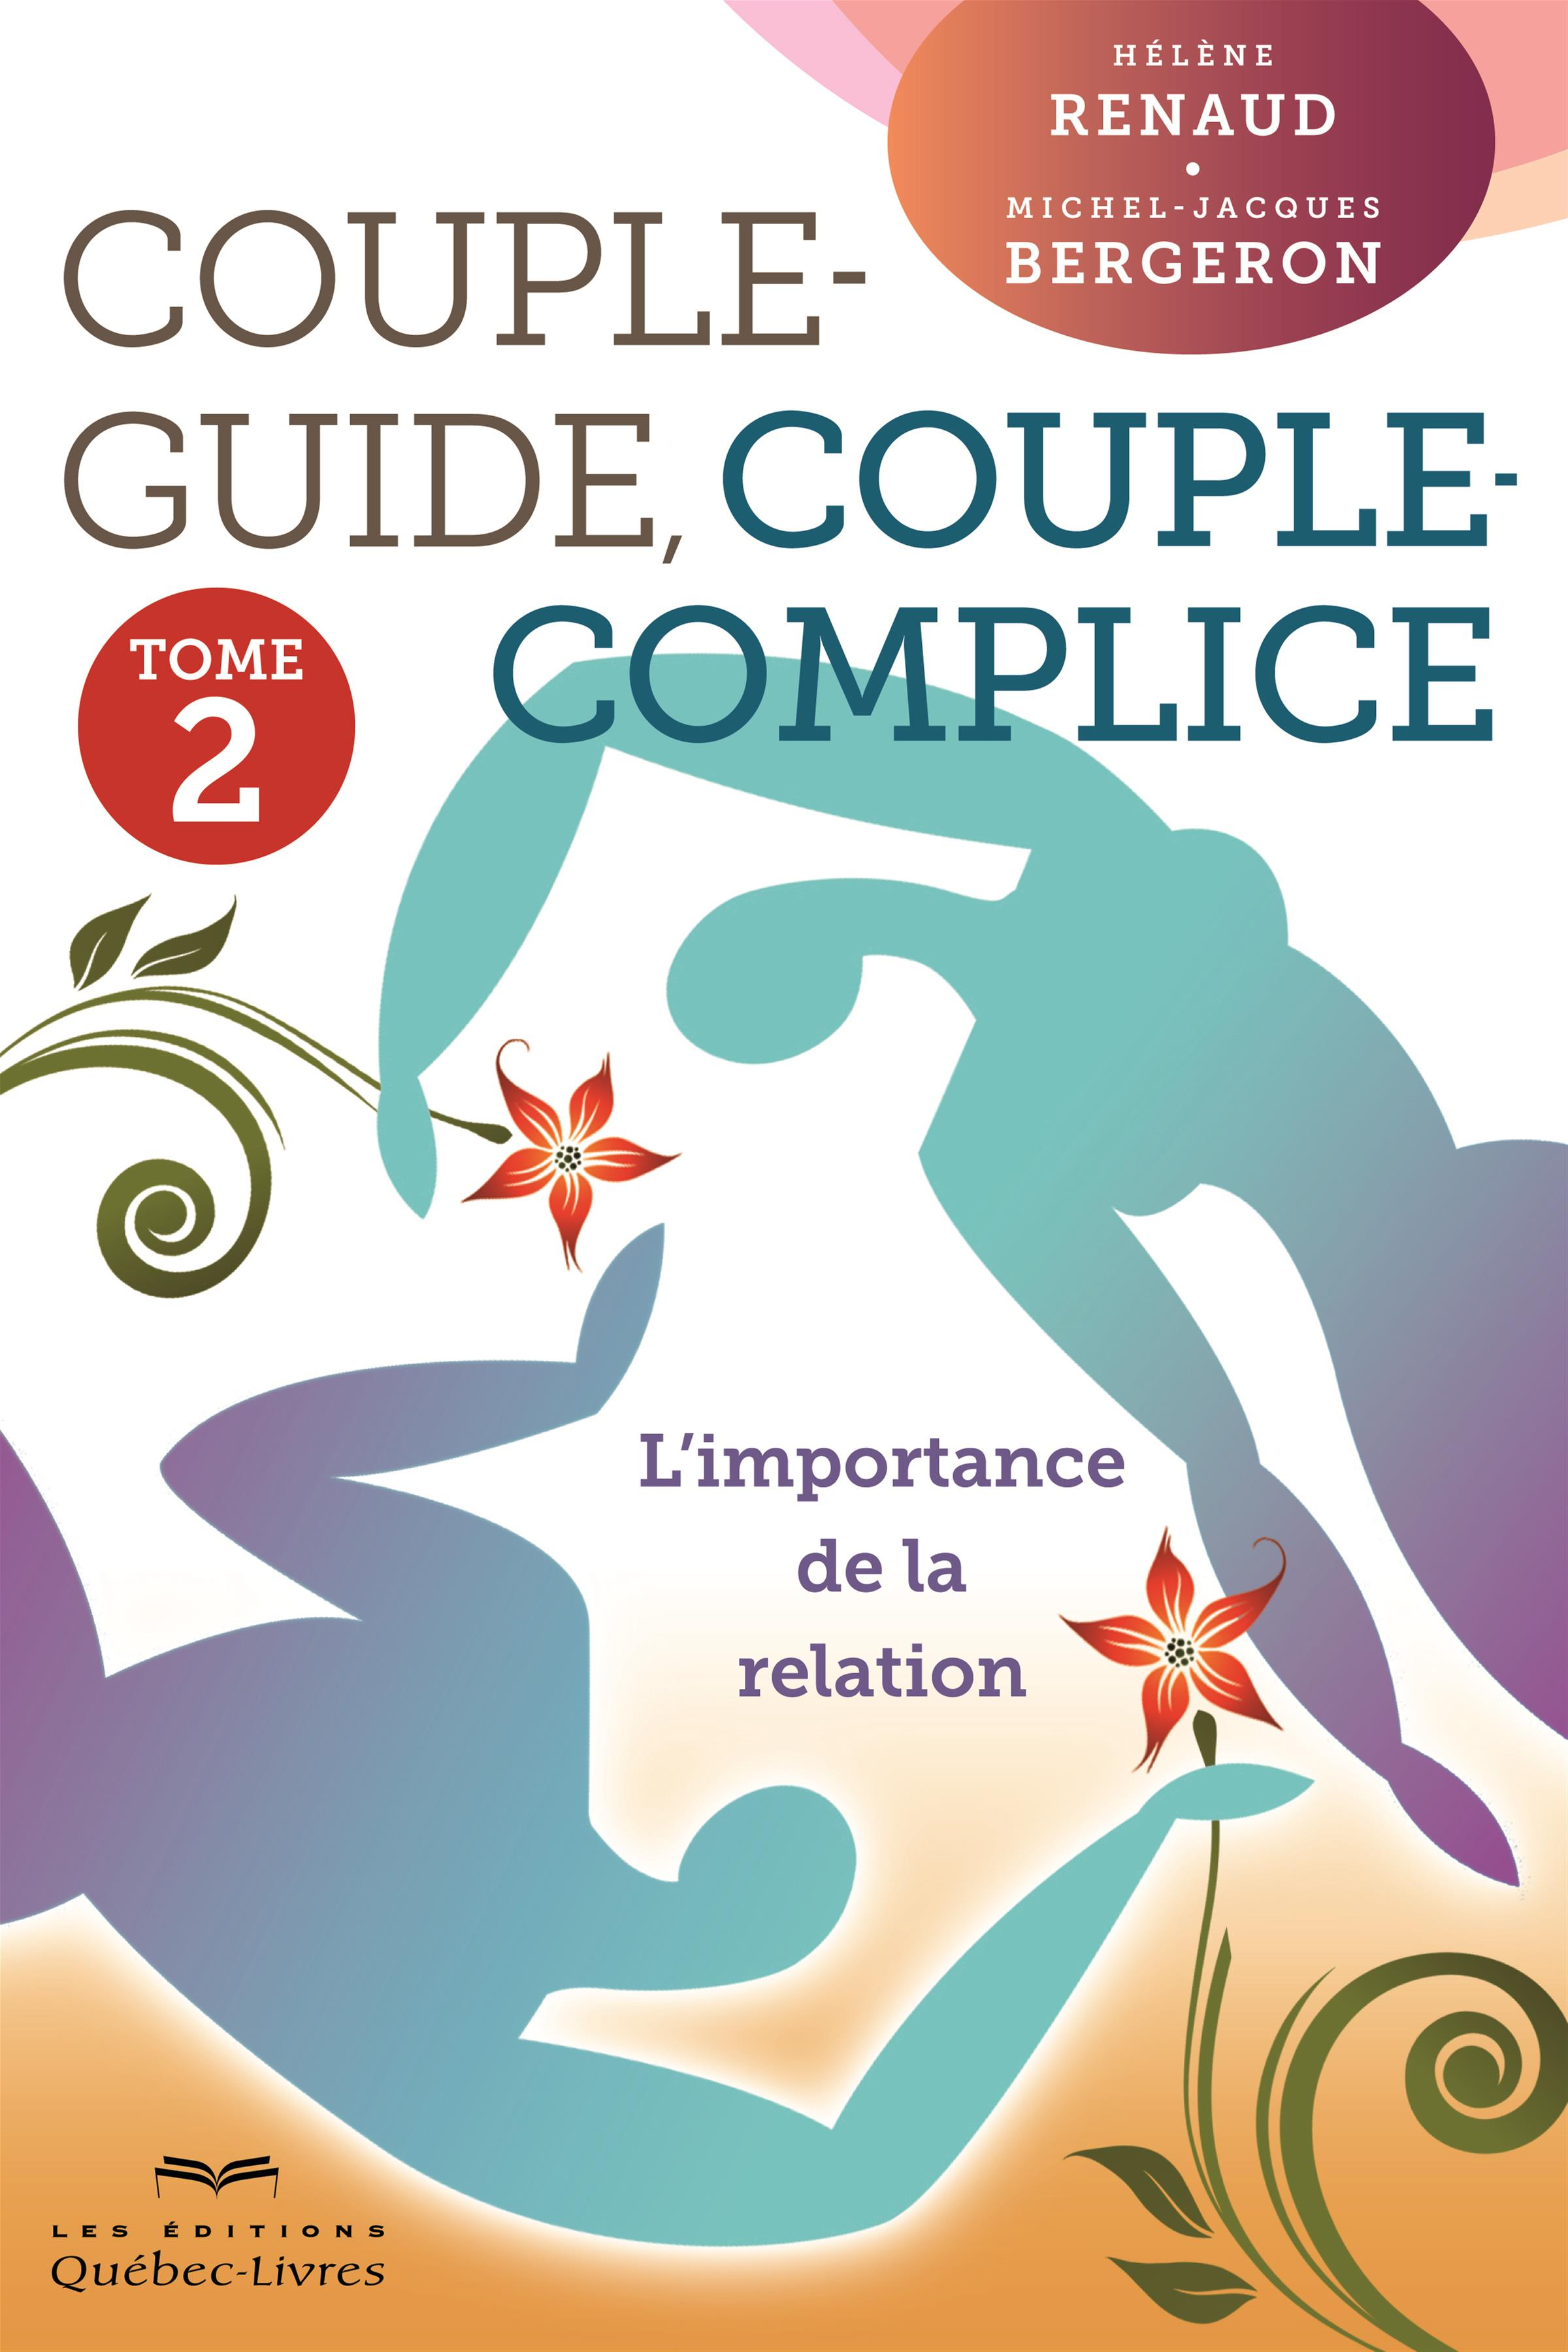 Couple-guide, couple-complice - Tome 2